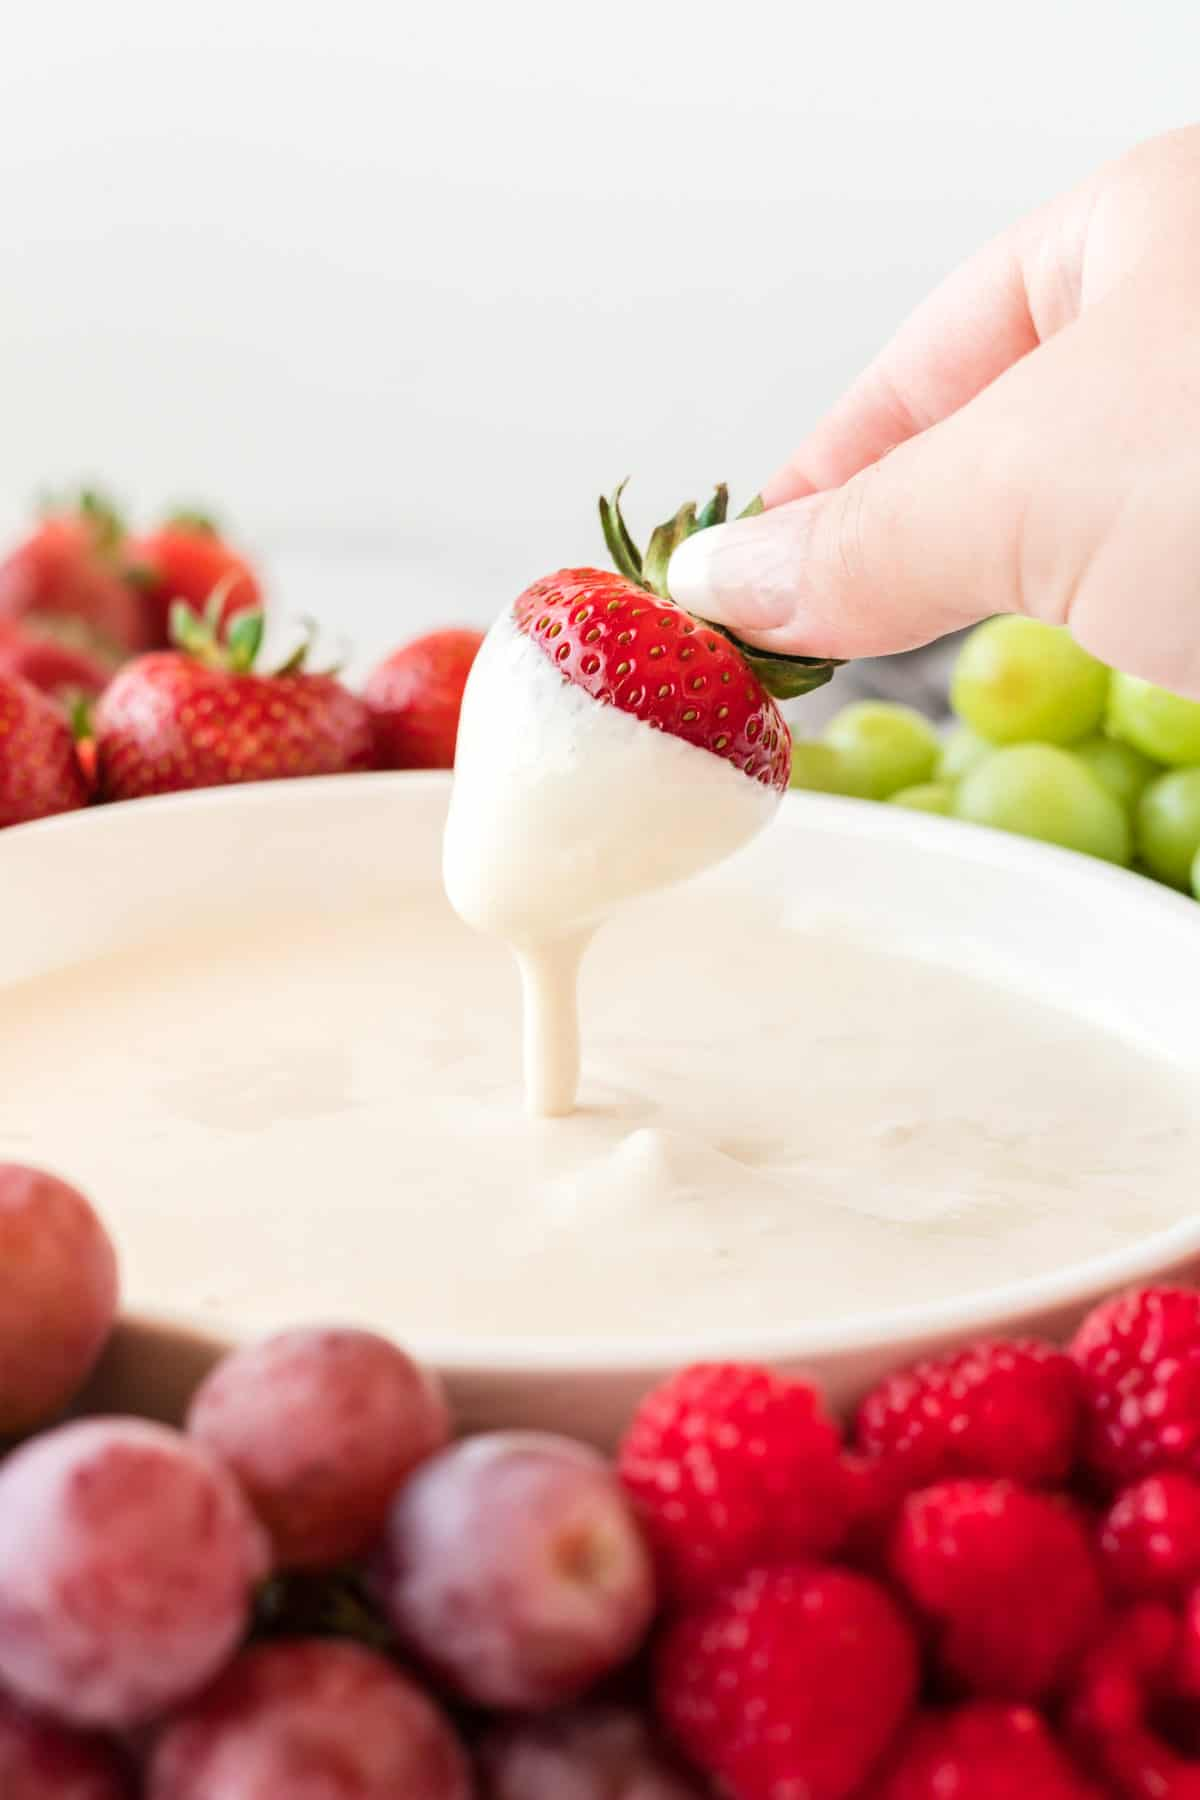 a strawberry being dipped into cream cheese yogurt dip